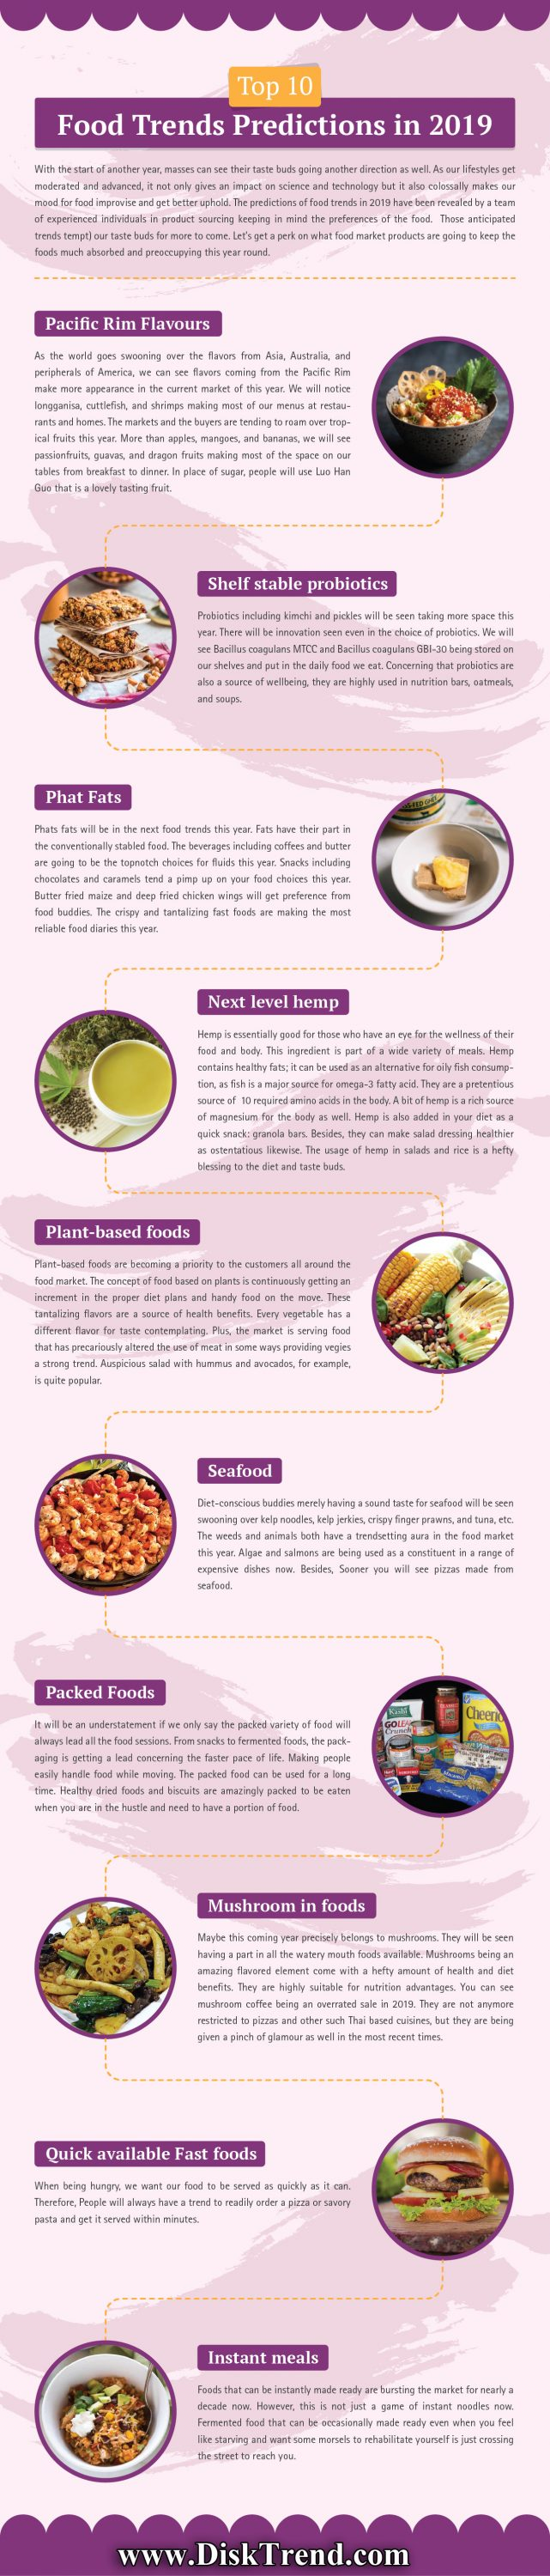 Top 10 Food Trends Predictions by DiskTrend.com